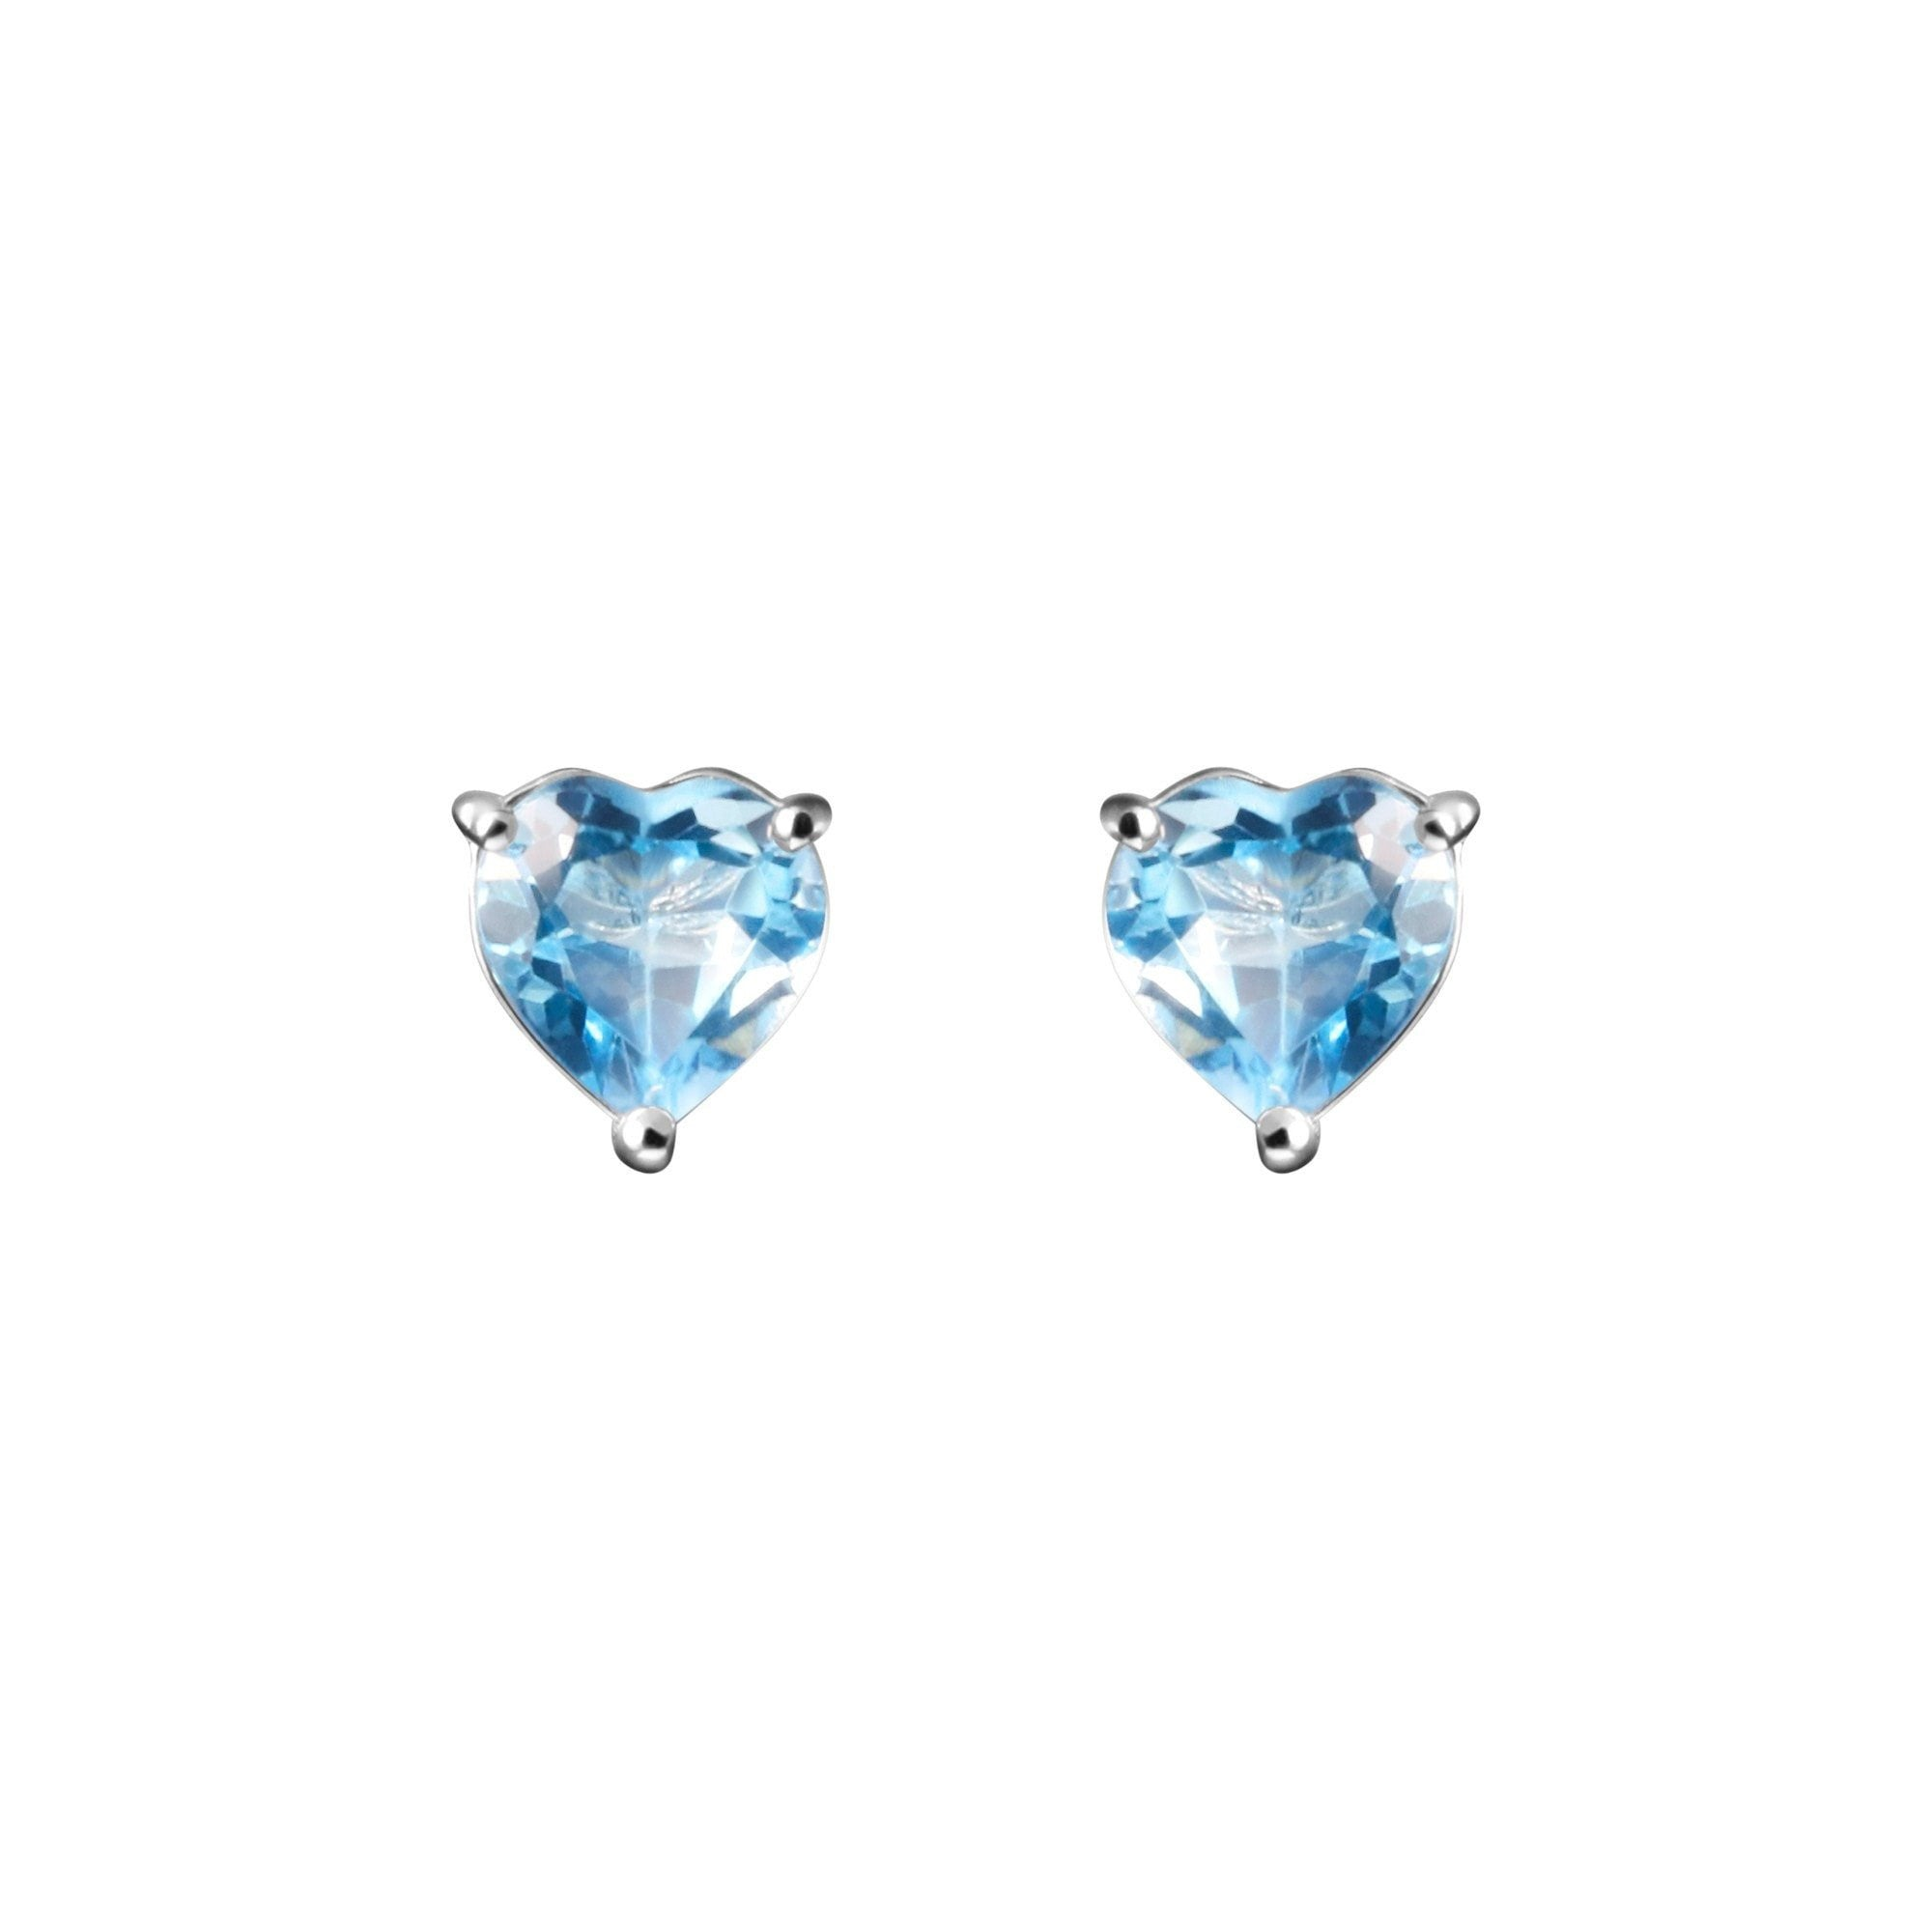 j shape stud platinum gia for diamond halo heart sale id jewelry shaped earrings amp l at